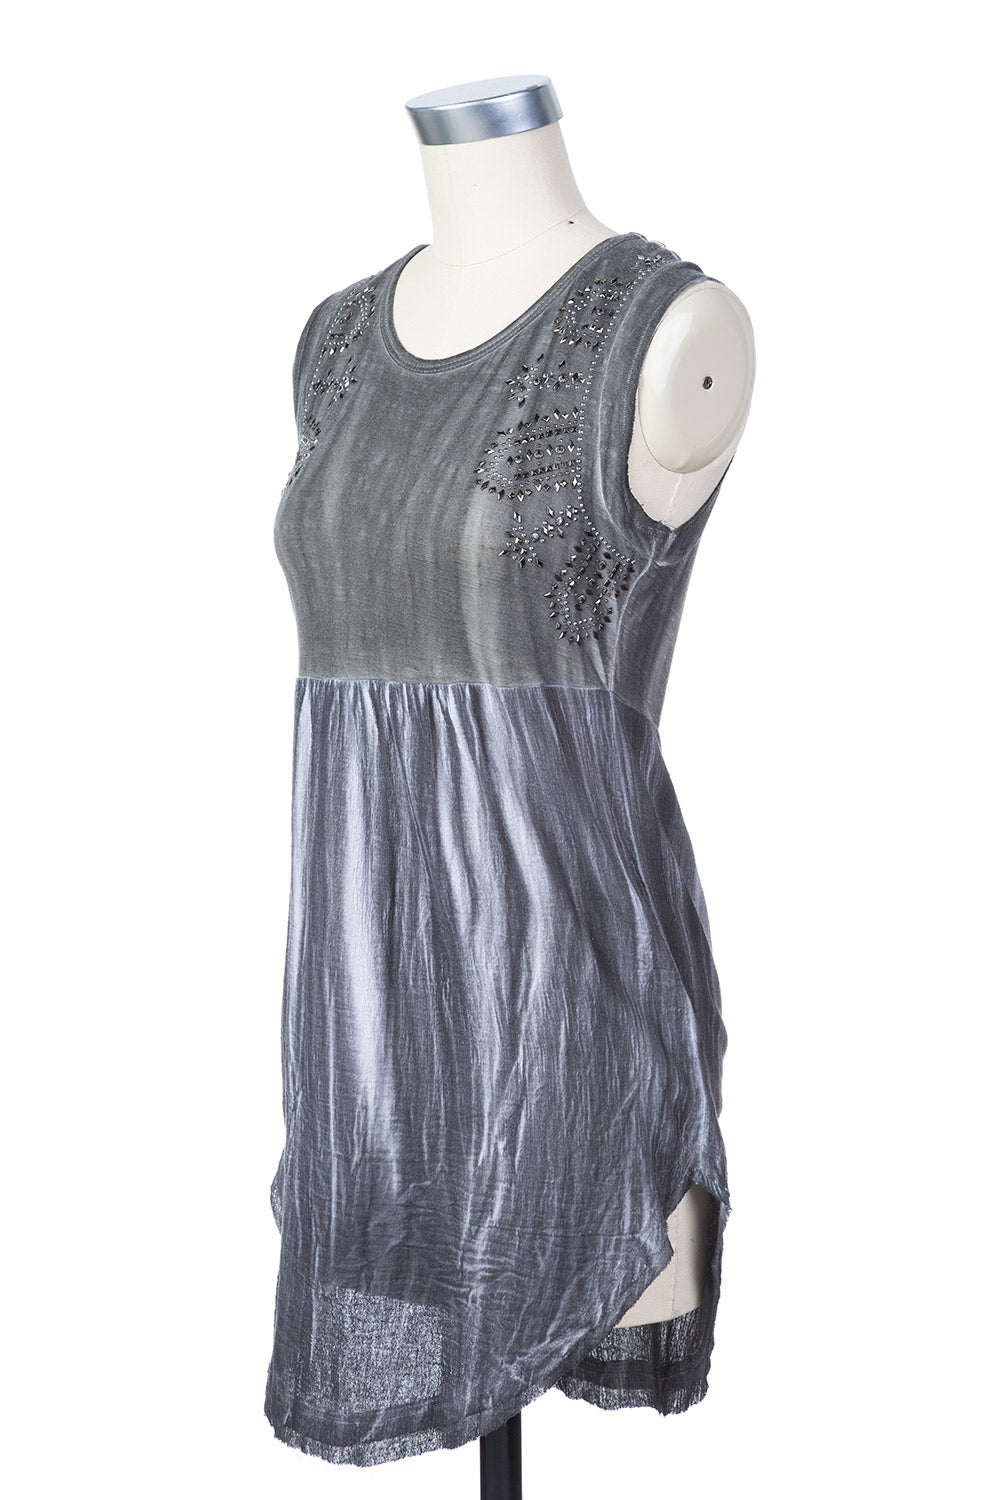 Type 2 Pewter Scrunch Top in Gray